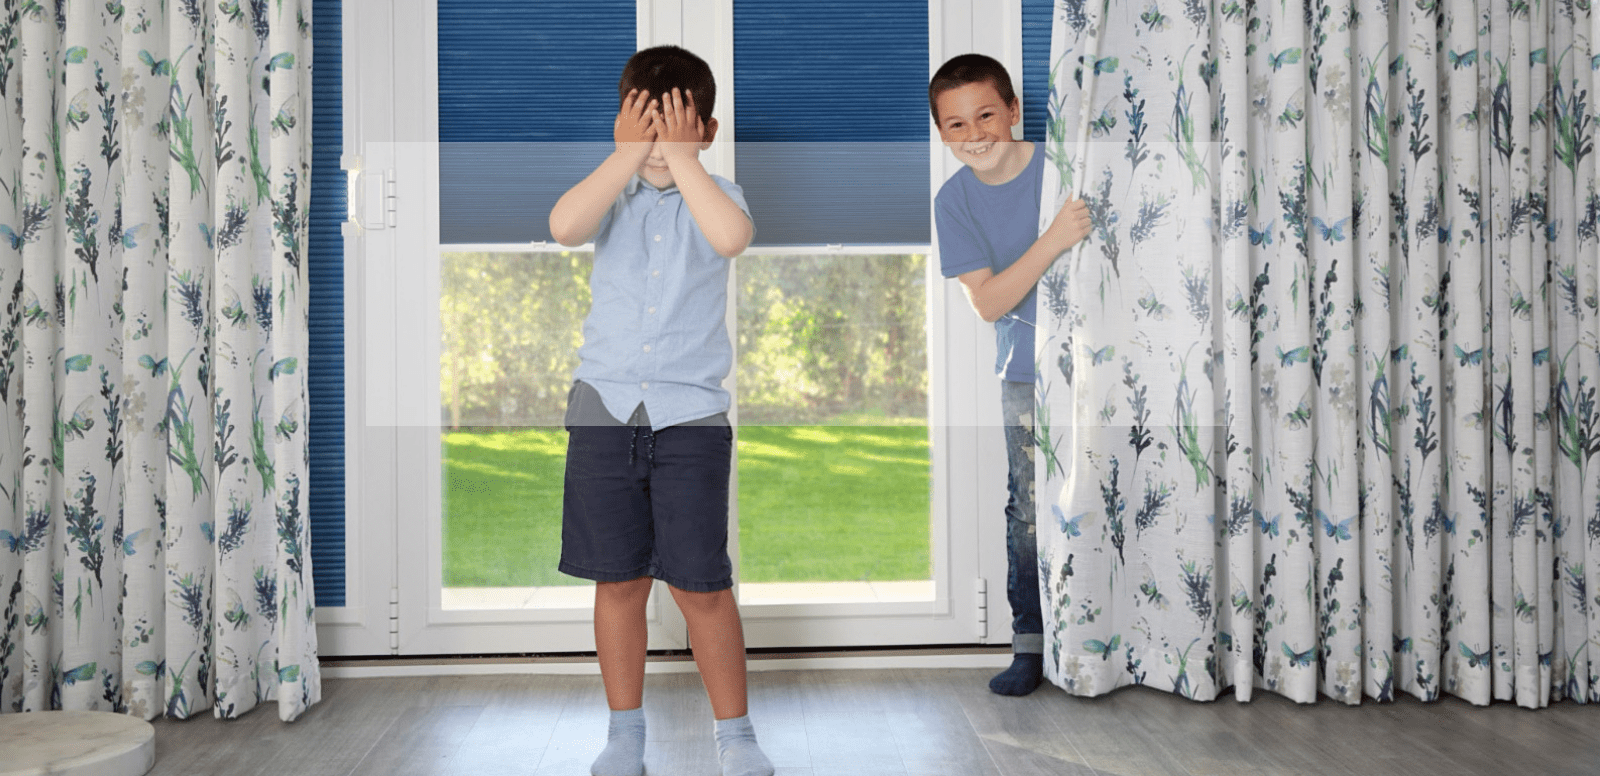 Two boys playing hide and seek in curtains | Norwich Sunblinds